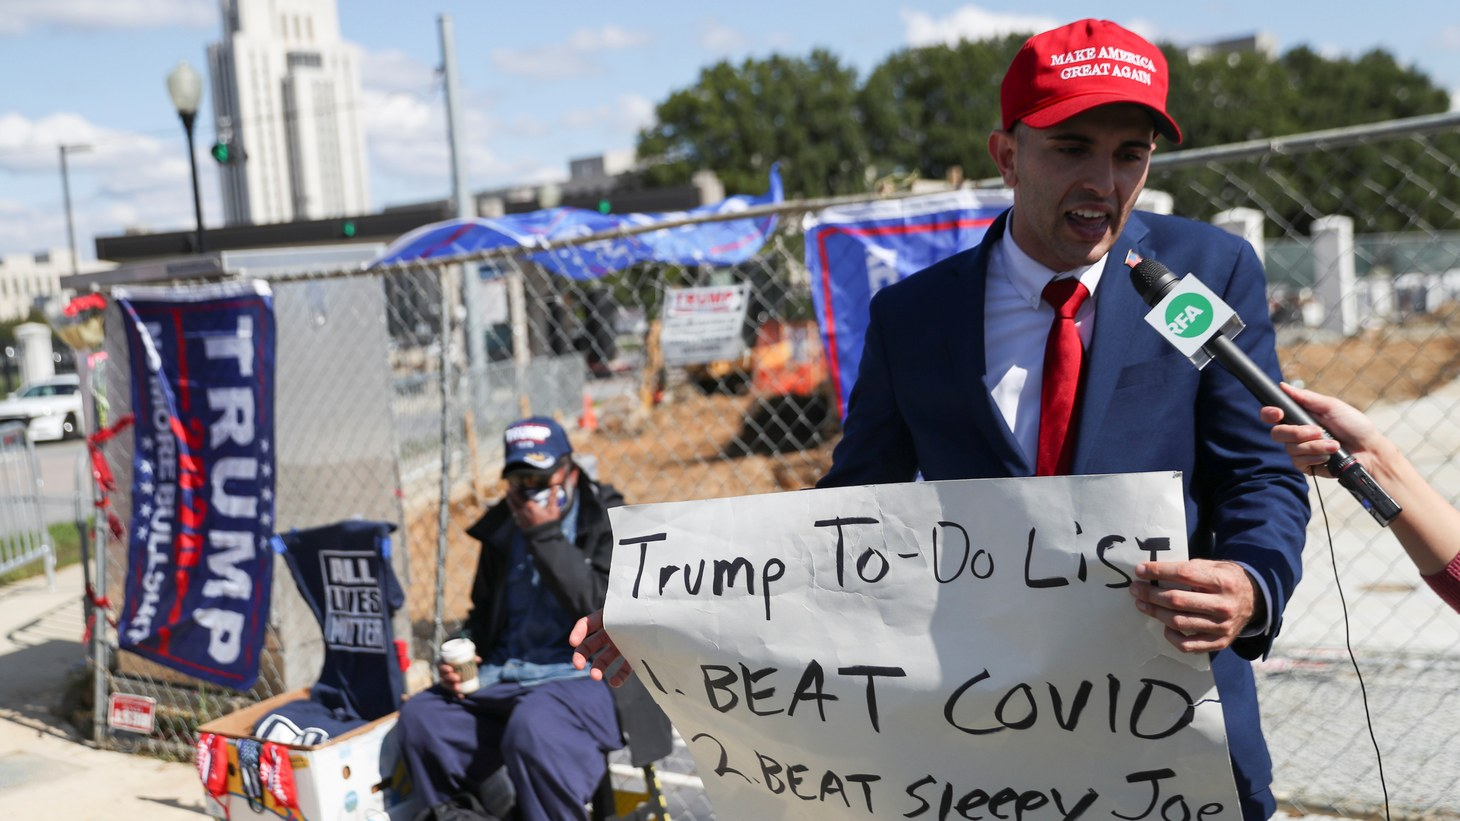 A supporter of U.S. President Donald Trump holds a sign as he talks to the media outside Walter Reed National Military Medical Center, where Trump is being treated for COVID-19 in Bethesda, Maryland, U.S. October 5, 2020.